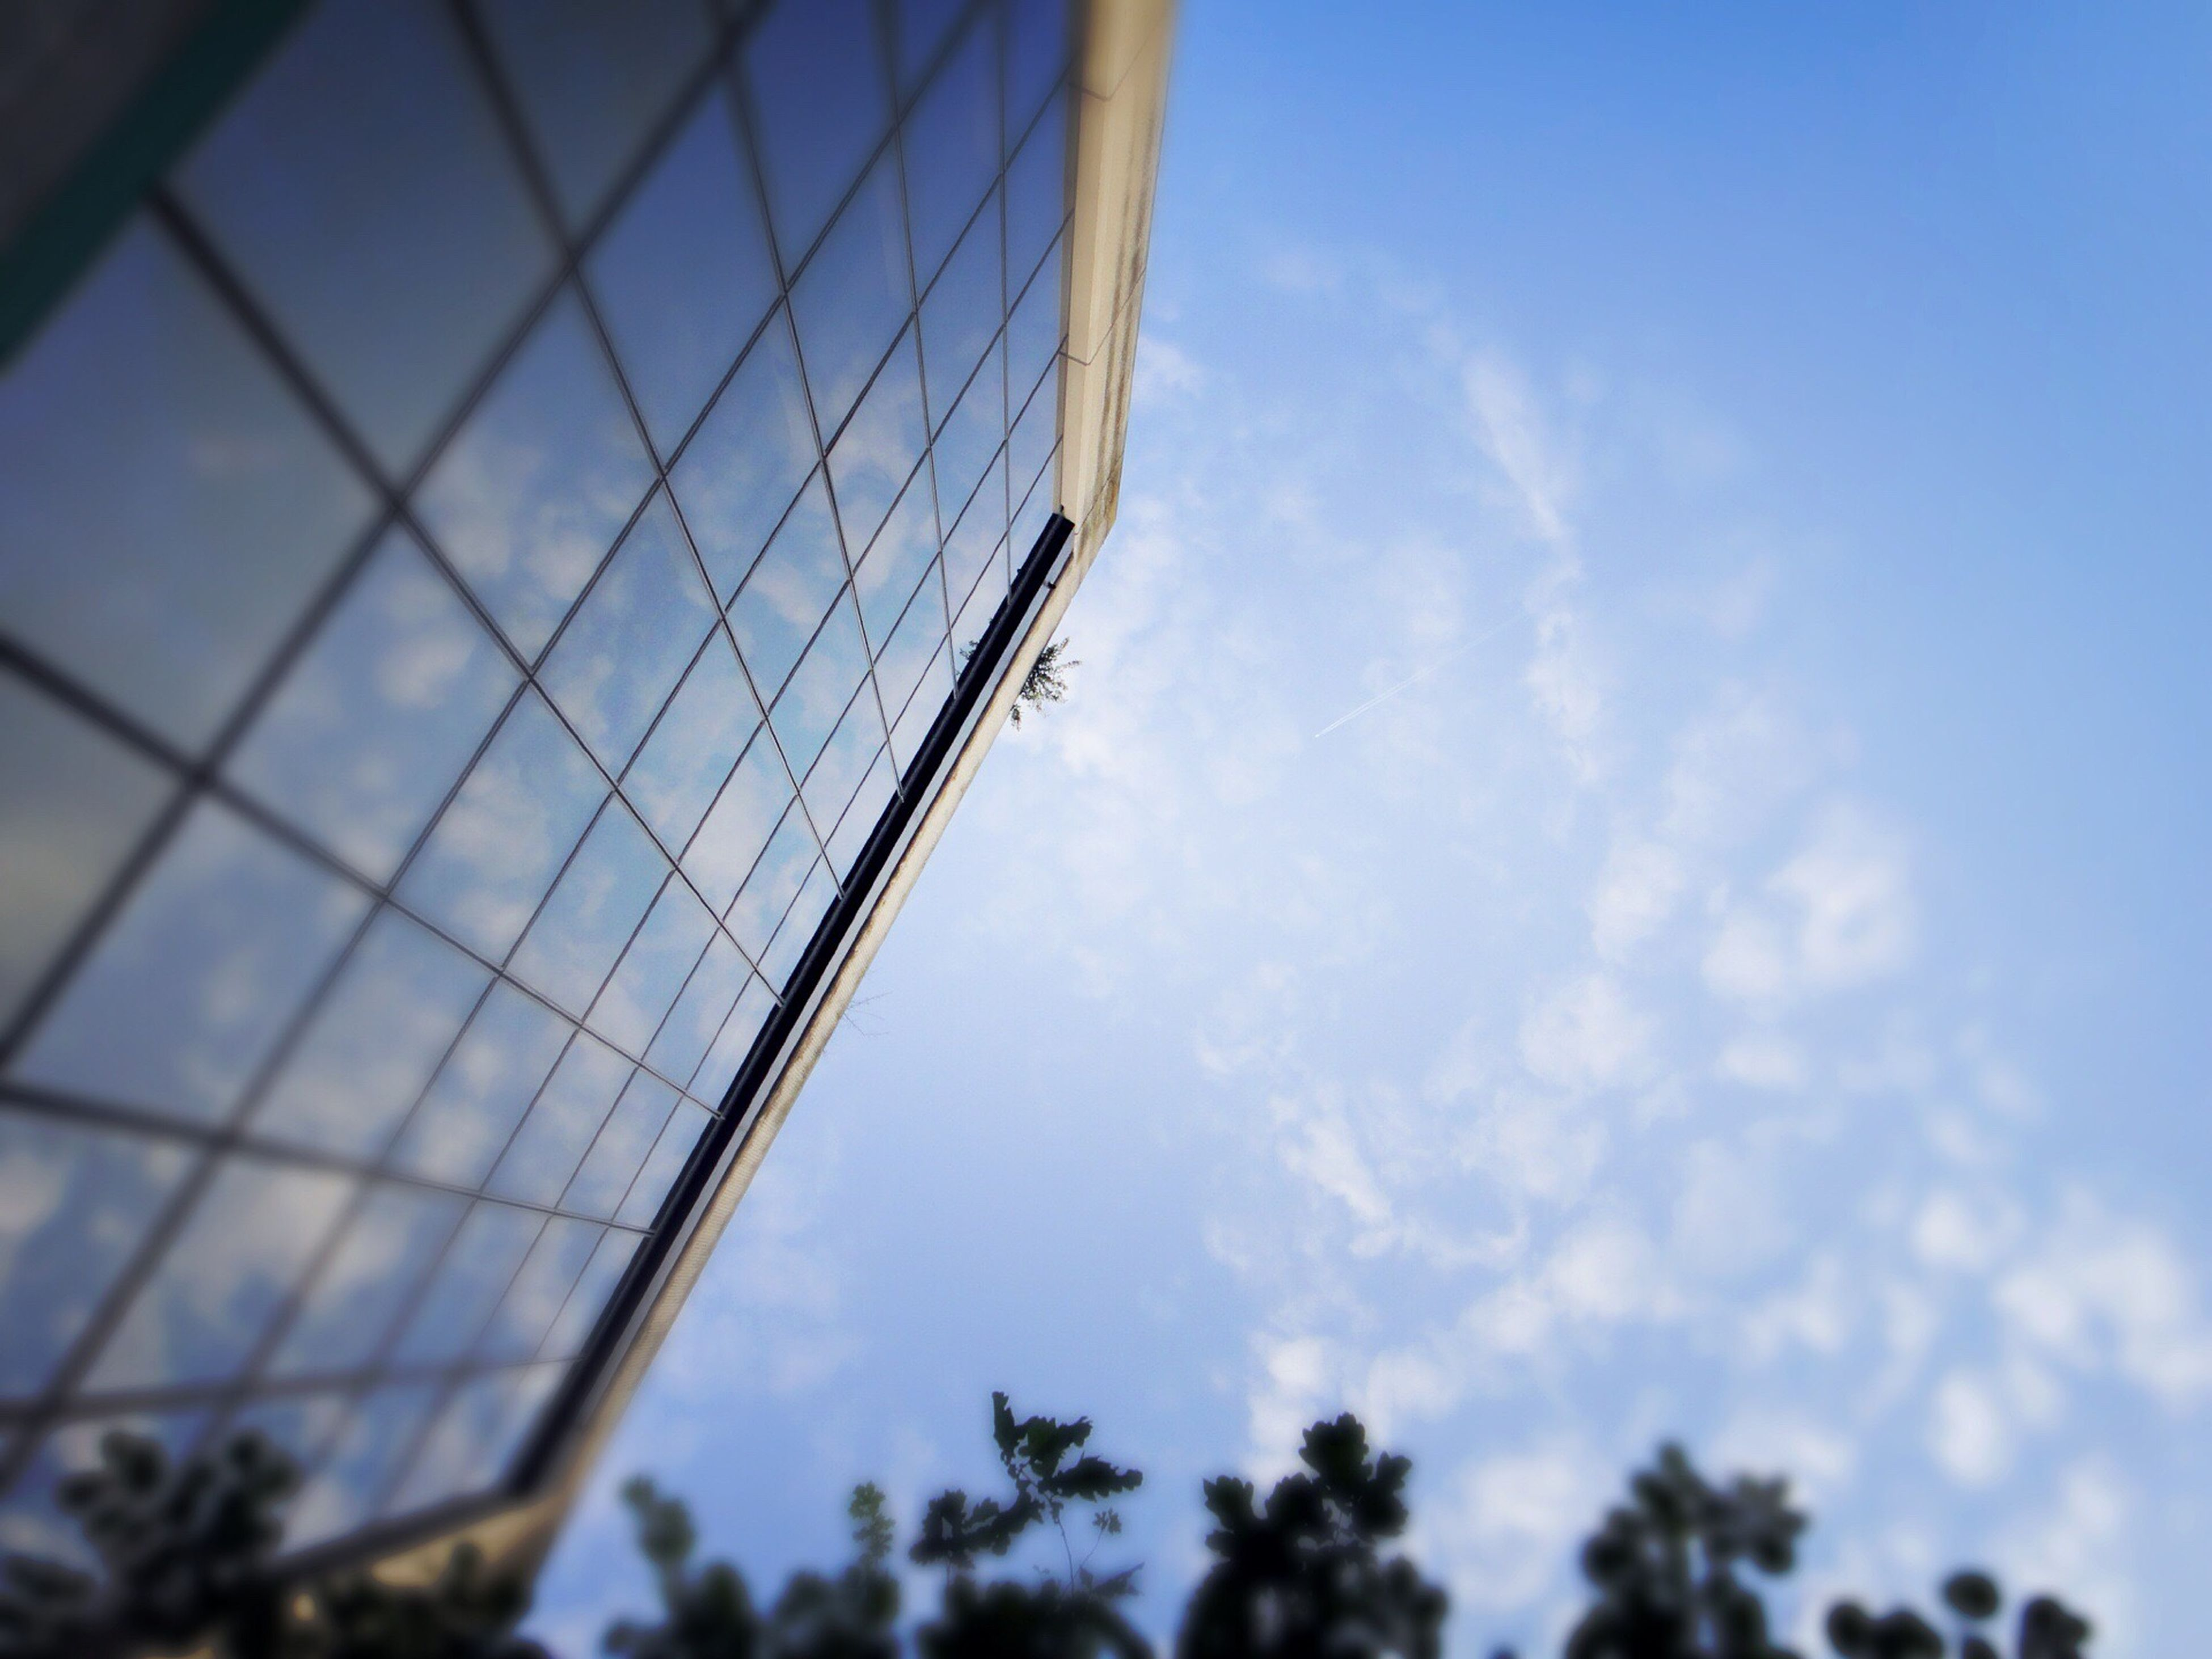 low angle view, sky, built structure, architecture, cloud - sky, cloud, metal, day, connection, no people, cloudy, blue, outdoors, metallic, tree, building exterior, nature, glass - material, sunlight, modern